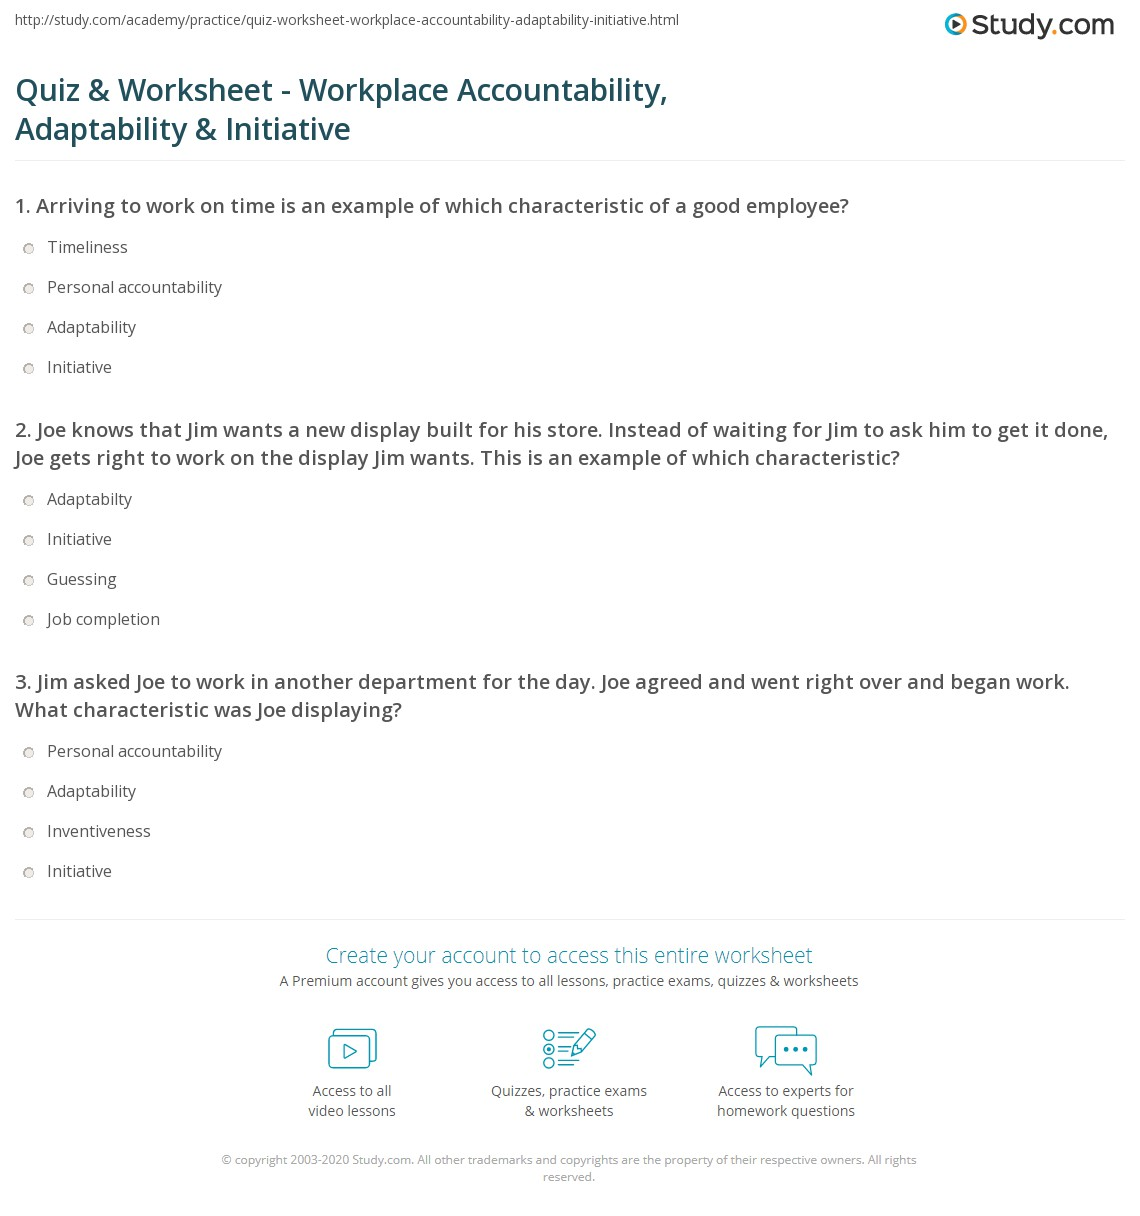 quiz worksheet workplace accountability adaptability 1 joe knows that jim wants a new display built for his store instead of waiting for jim to ask him to get it done joe gets right to work on the